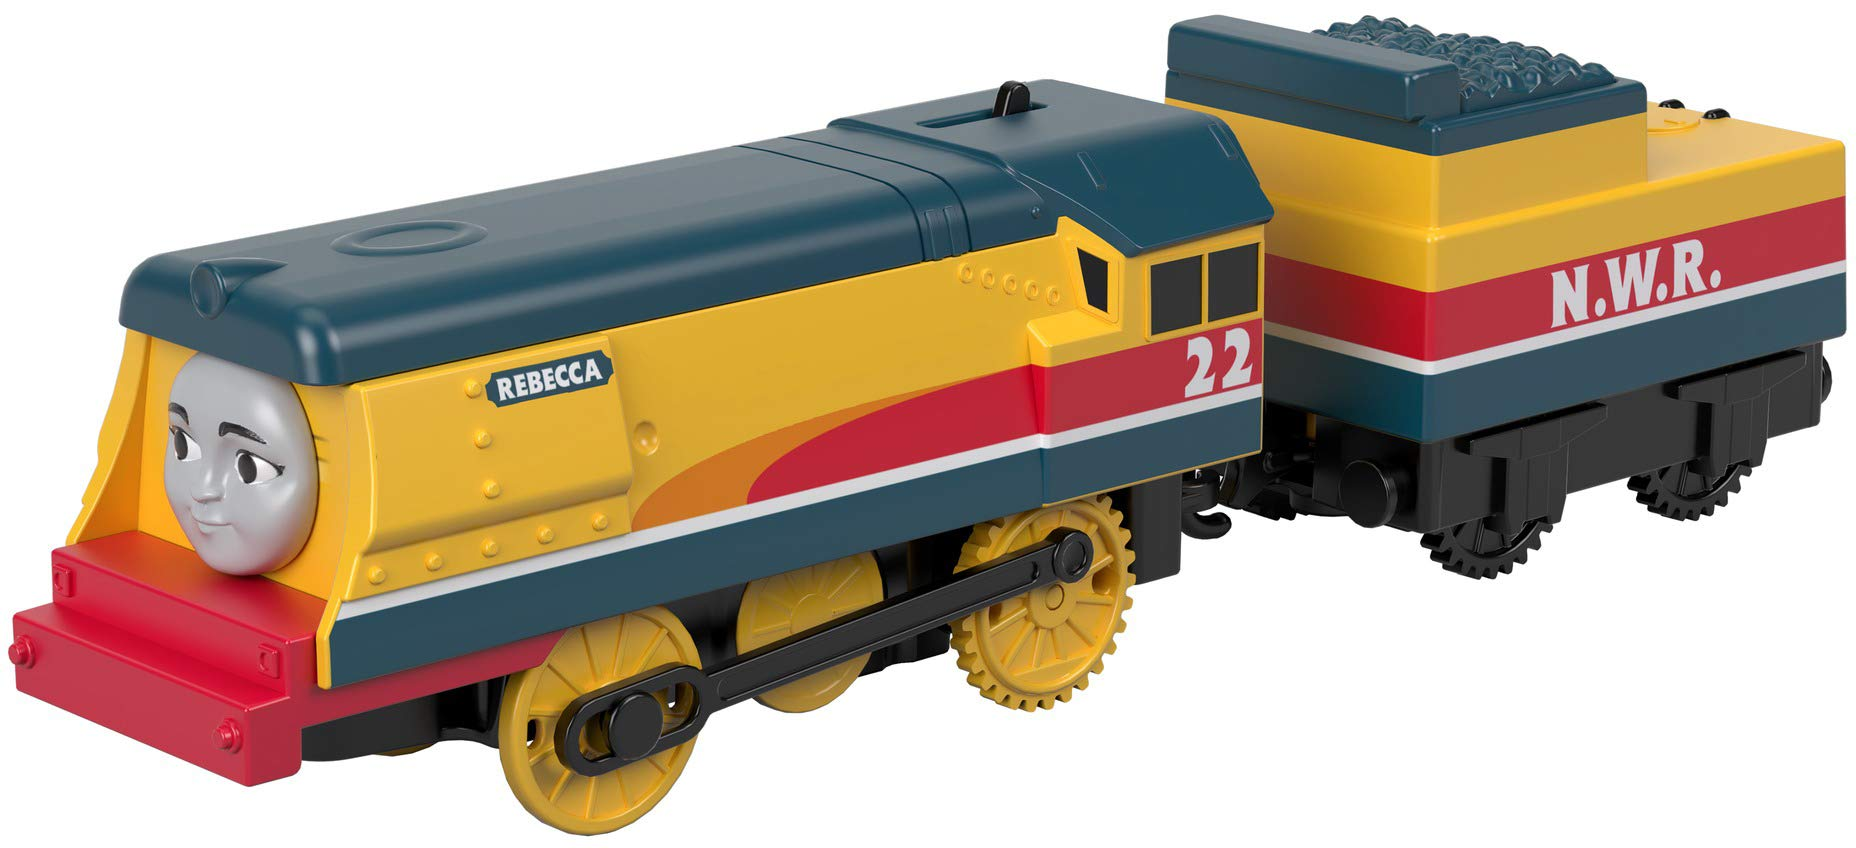 Fisher-Price Thomas & Friends Trackmaster, Rebecca by Fisher-Price